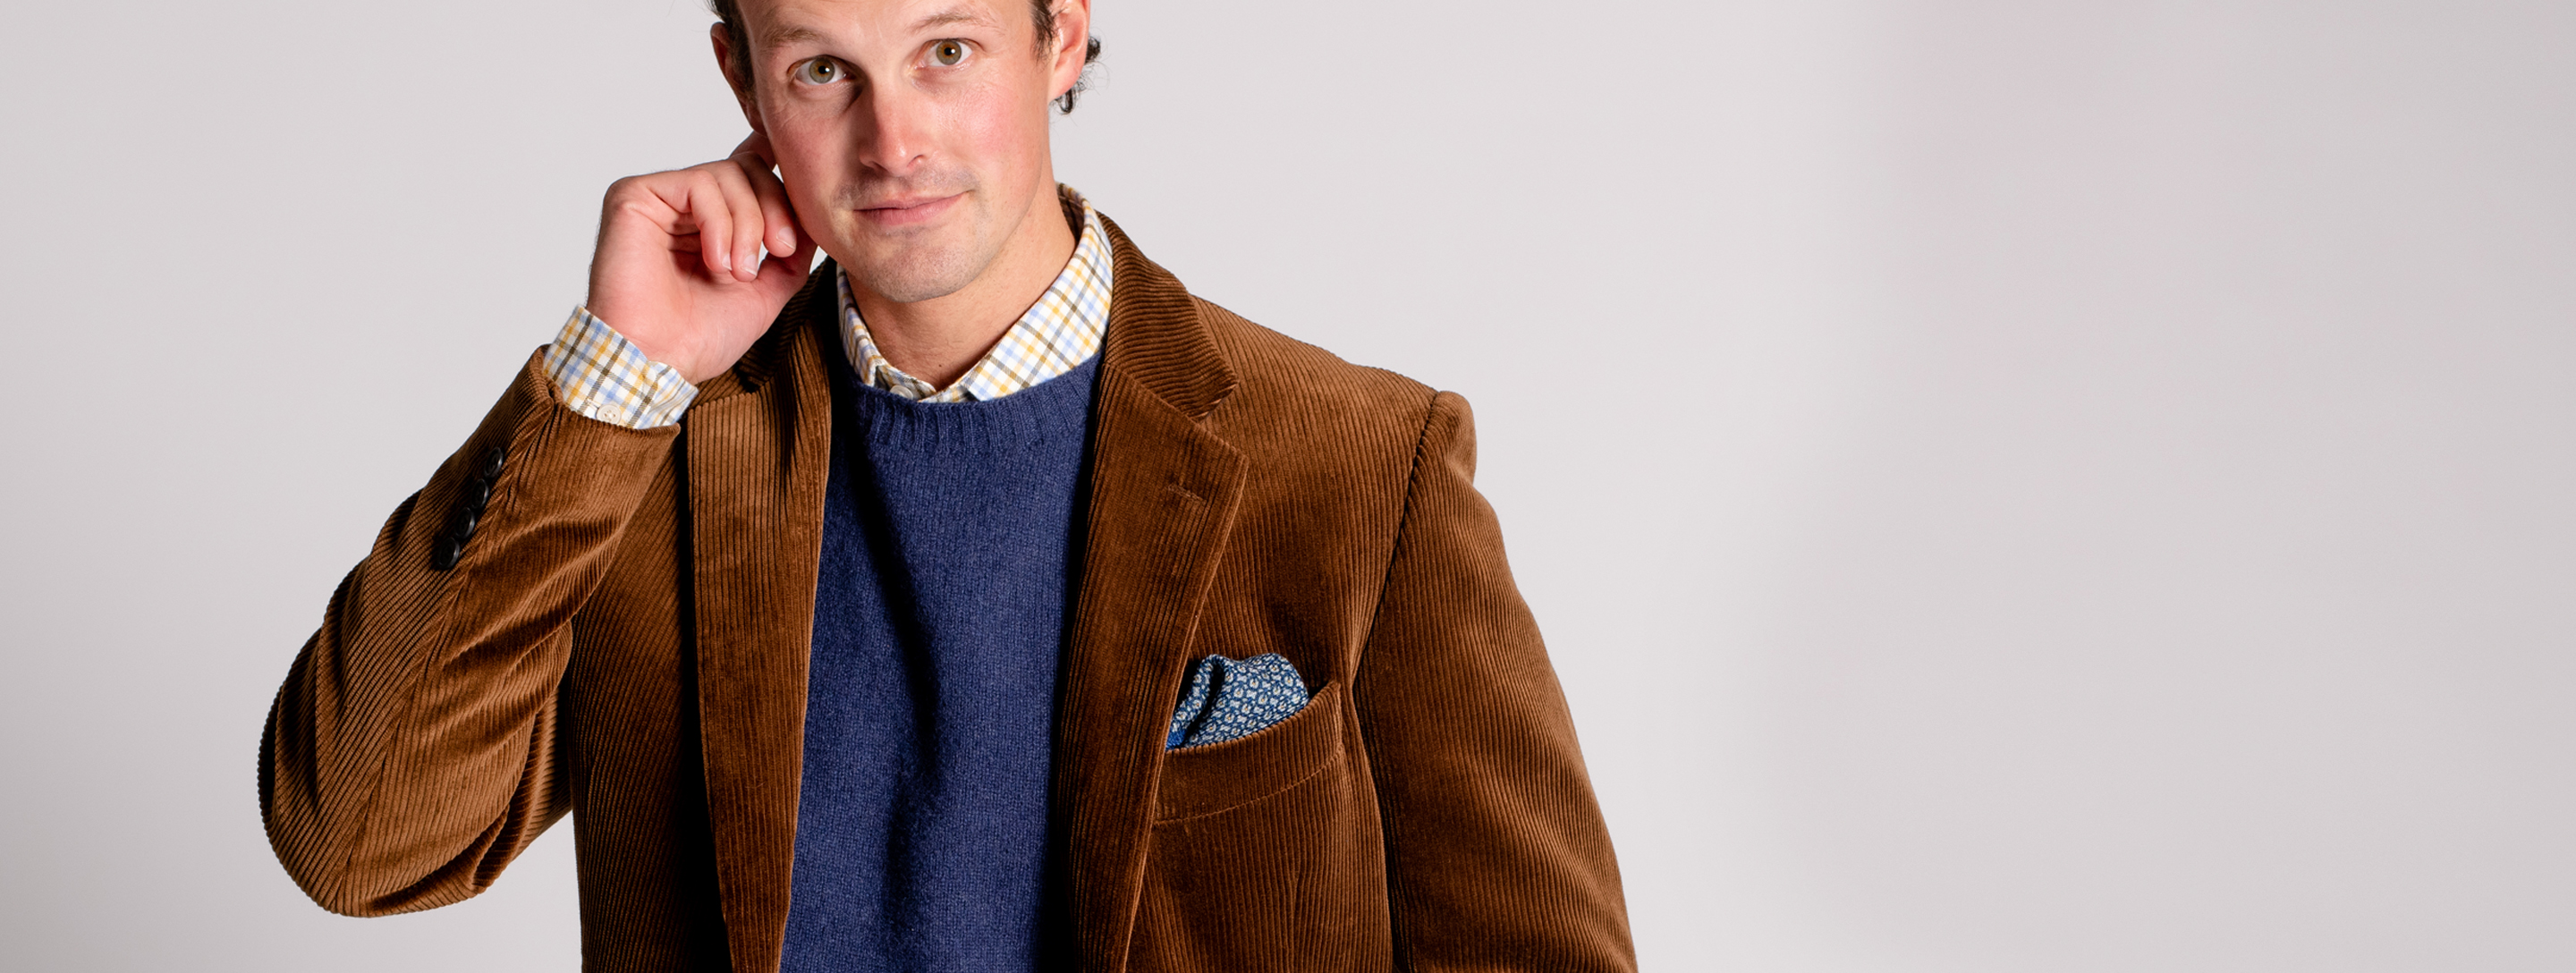 Tweed, Wool and Donegal Jackets